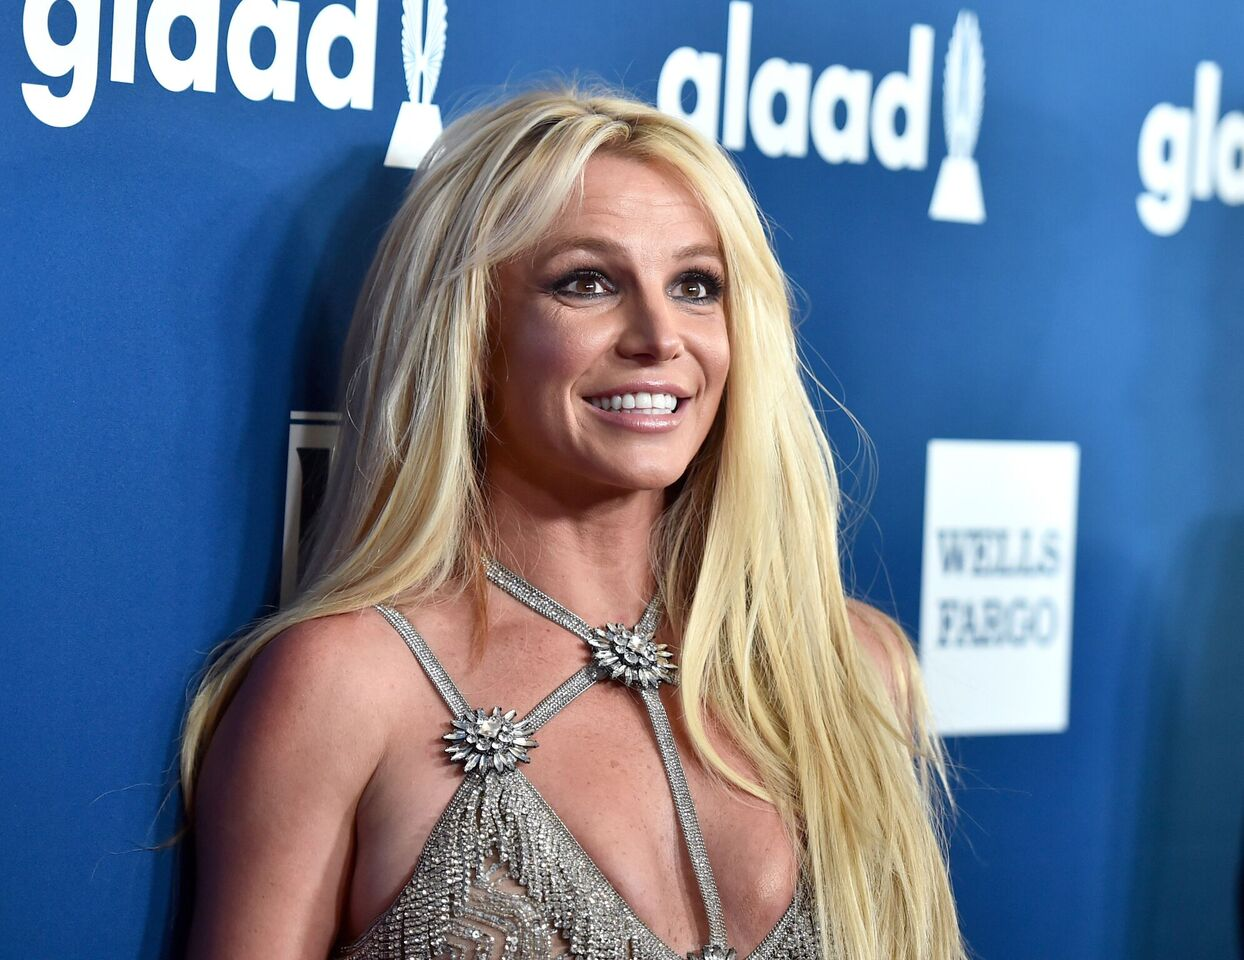 Britney Spears attends the 29th Annual GLAAD Media Awards at The Beverly Hilton Hotel on April 12, 2018 in Beverly Hills, California. | Source: Getty Images